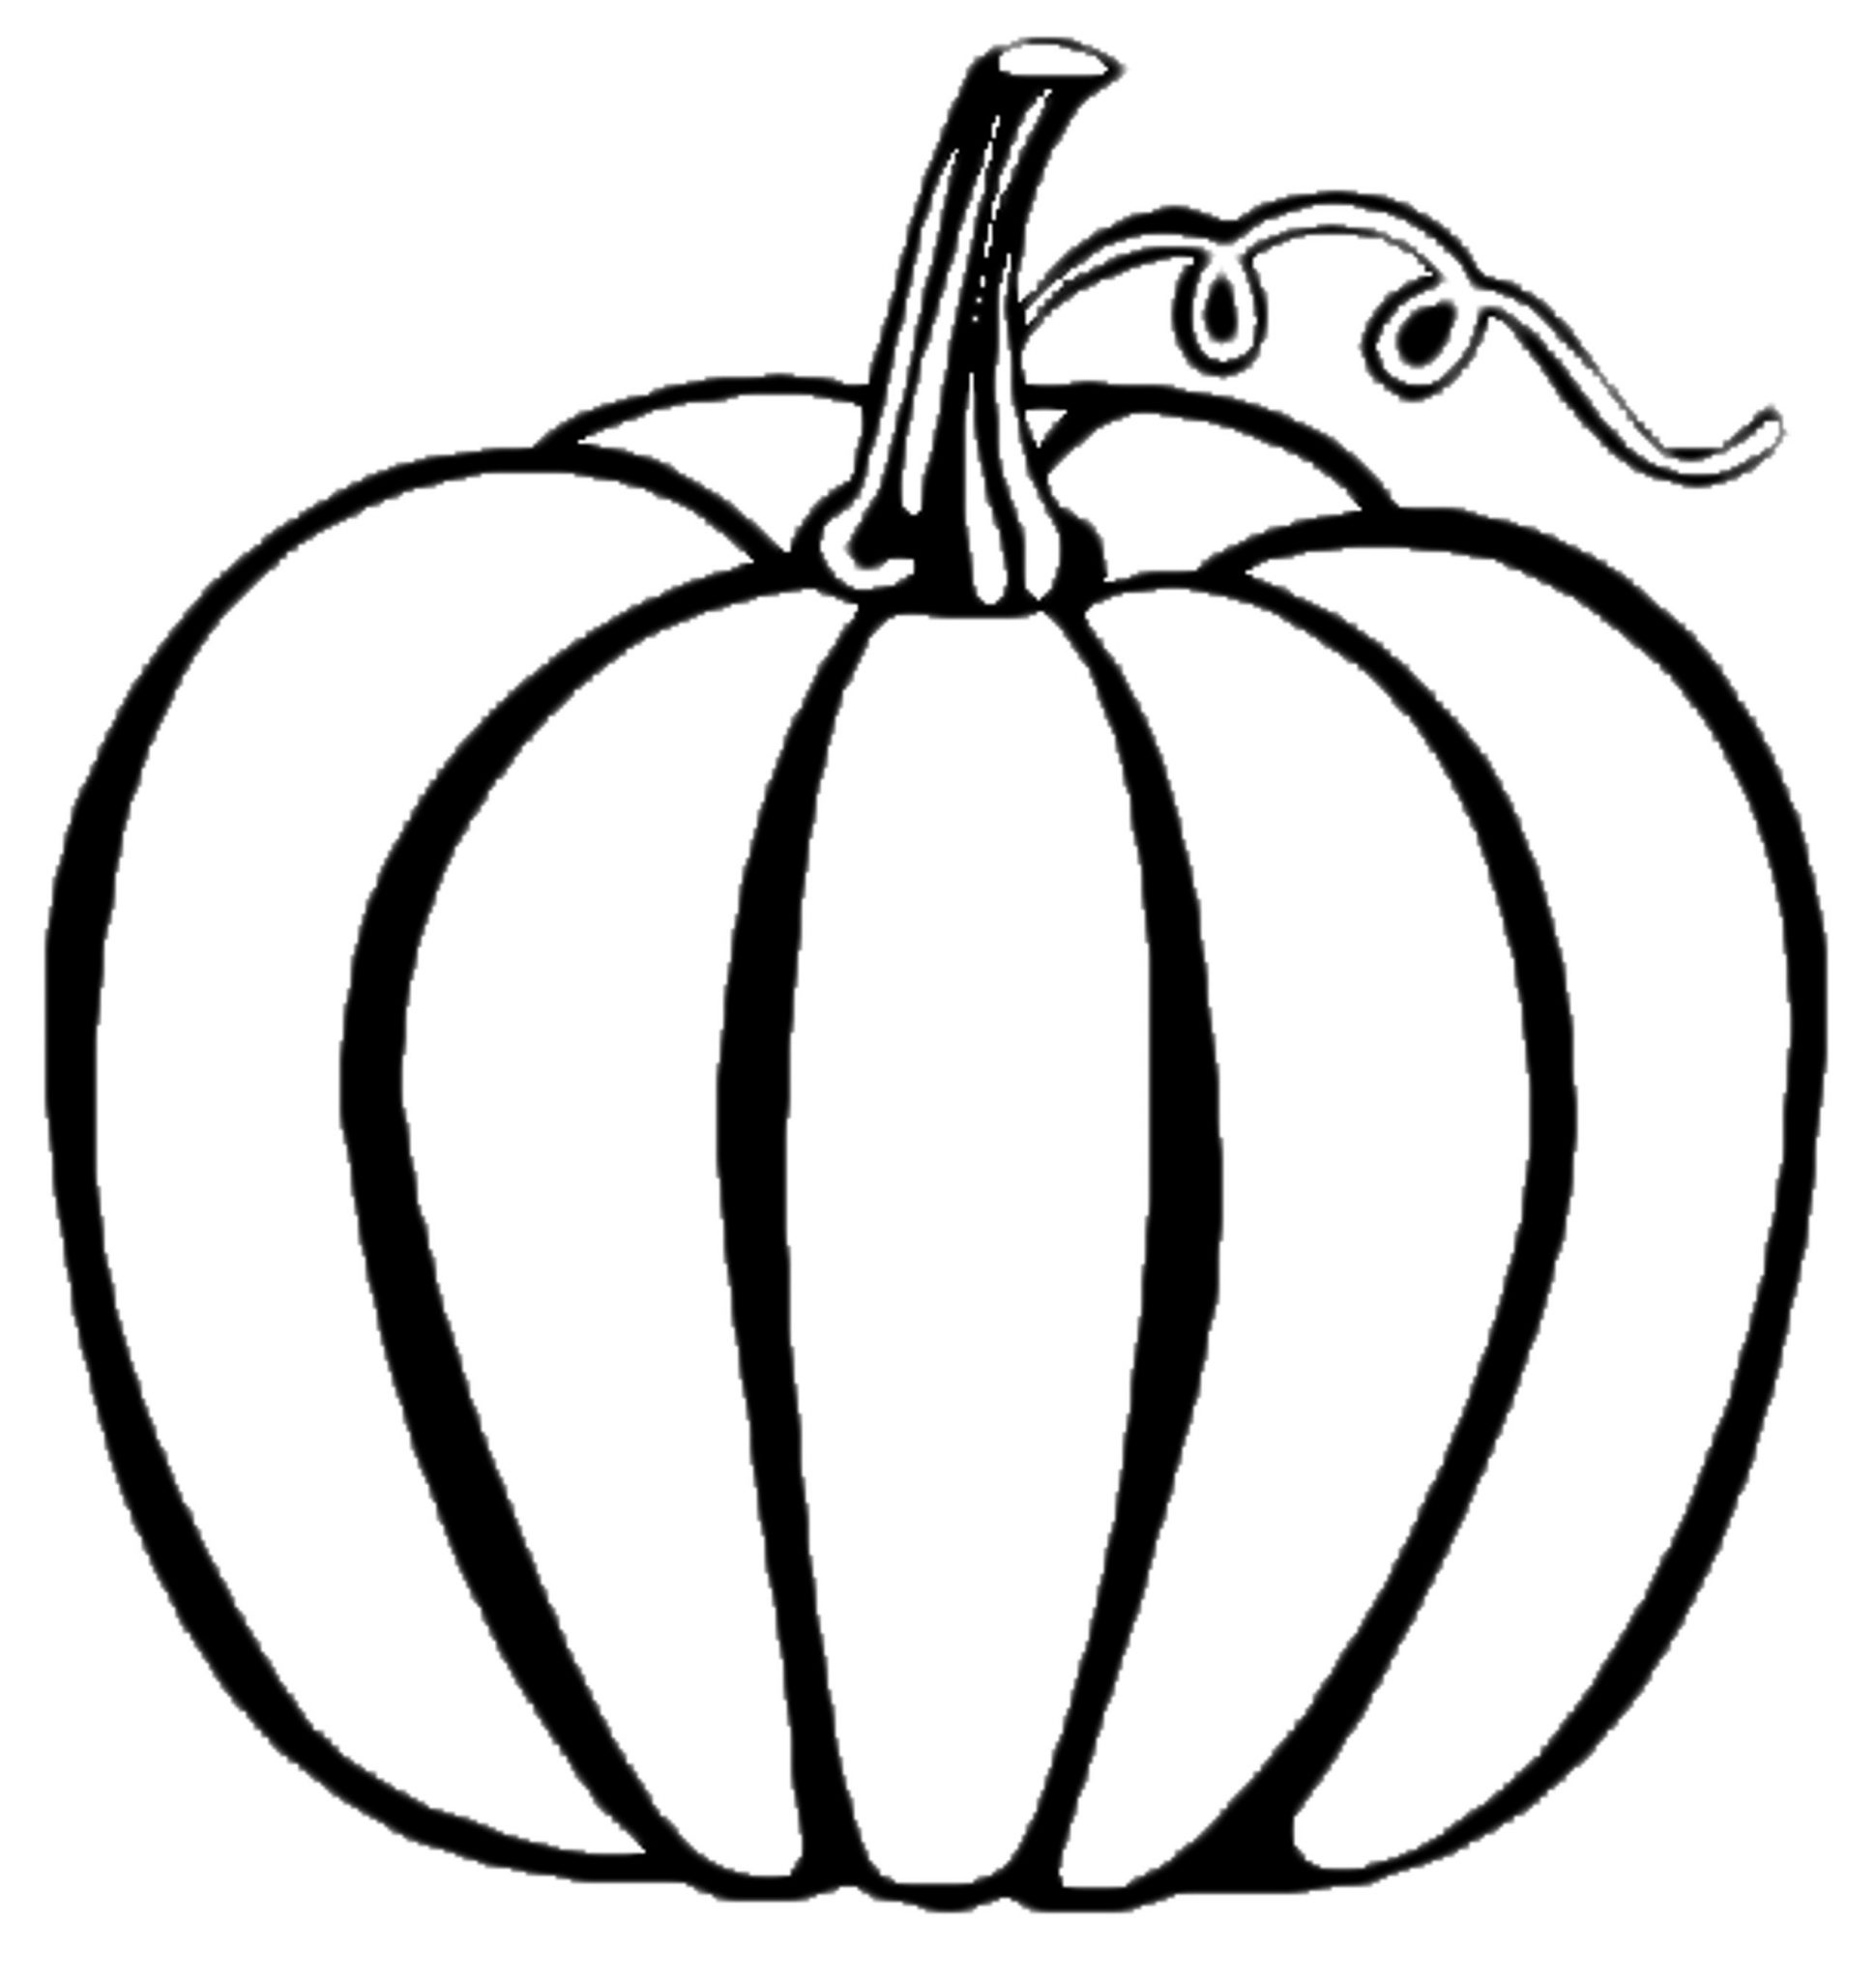 pumpkin colouring pictures pumpkin drawing for kids at getdrawings free download colouring pictures pumpkin